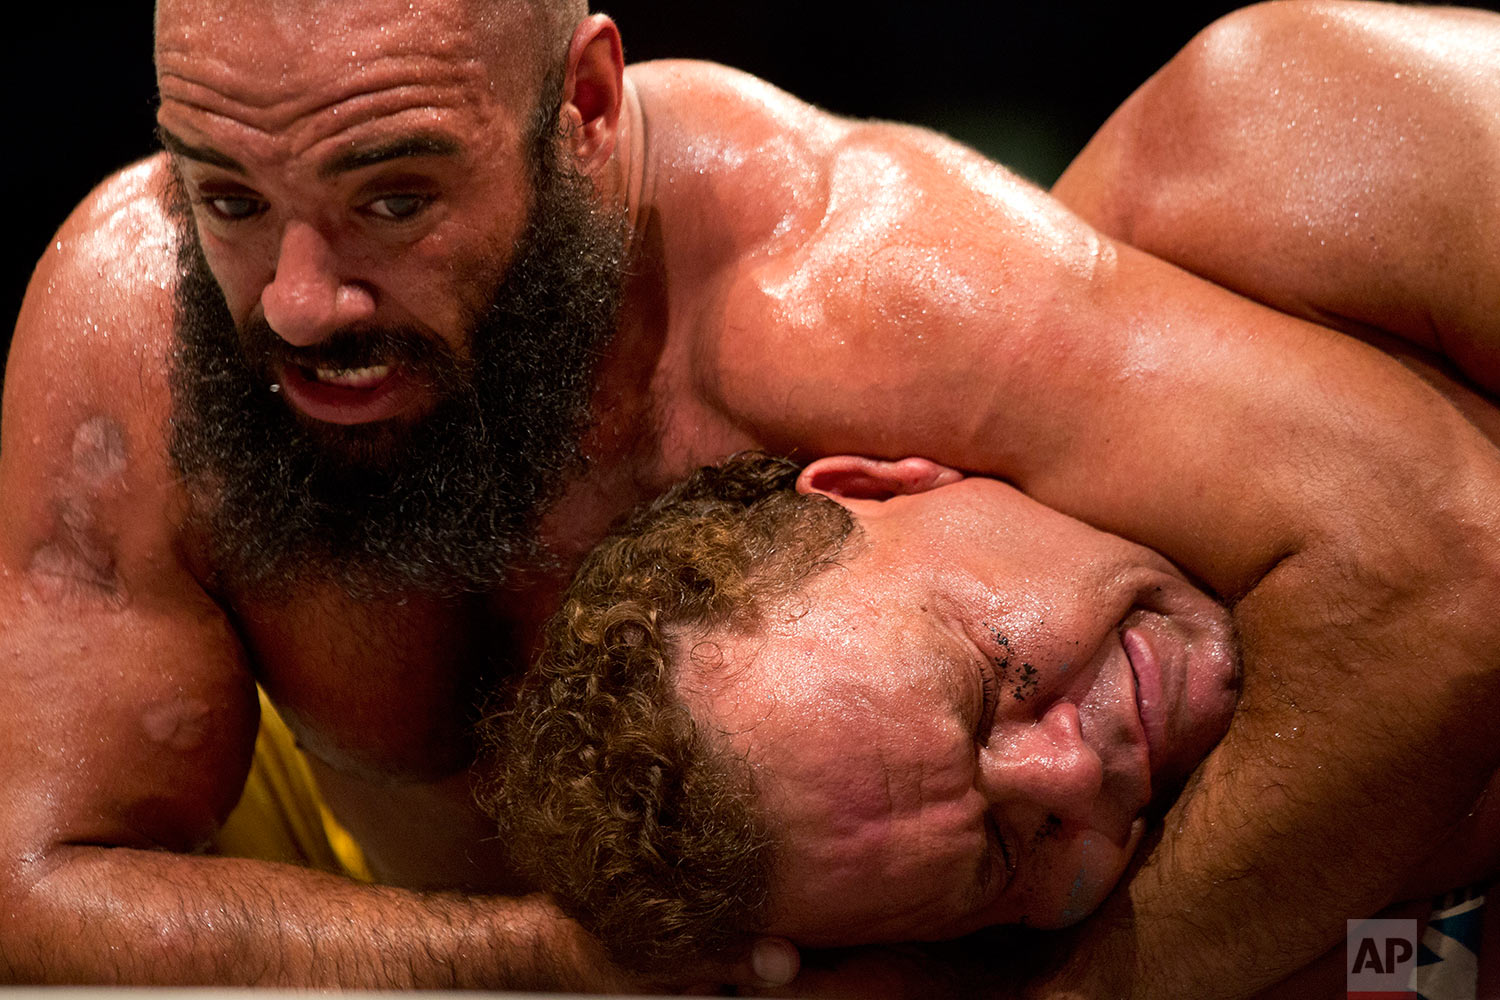 Wrestler Hakem Waqur puts a hold on Tatanka during The Rage Wrestling Mega Show in Tel Aviv, Israel, Sunday, July 9, 2017. The Israeli Wrestling League hosted a wrestling show in Tel Aviv with Kevin Von Erich and some of the WWE greatest of all time. (AP Photo/Ariel Schalit)